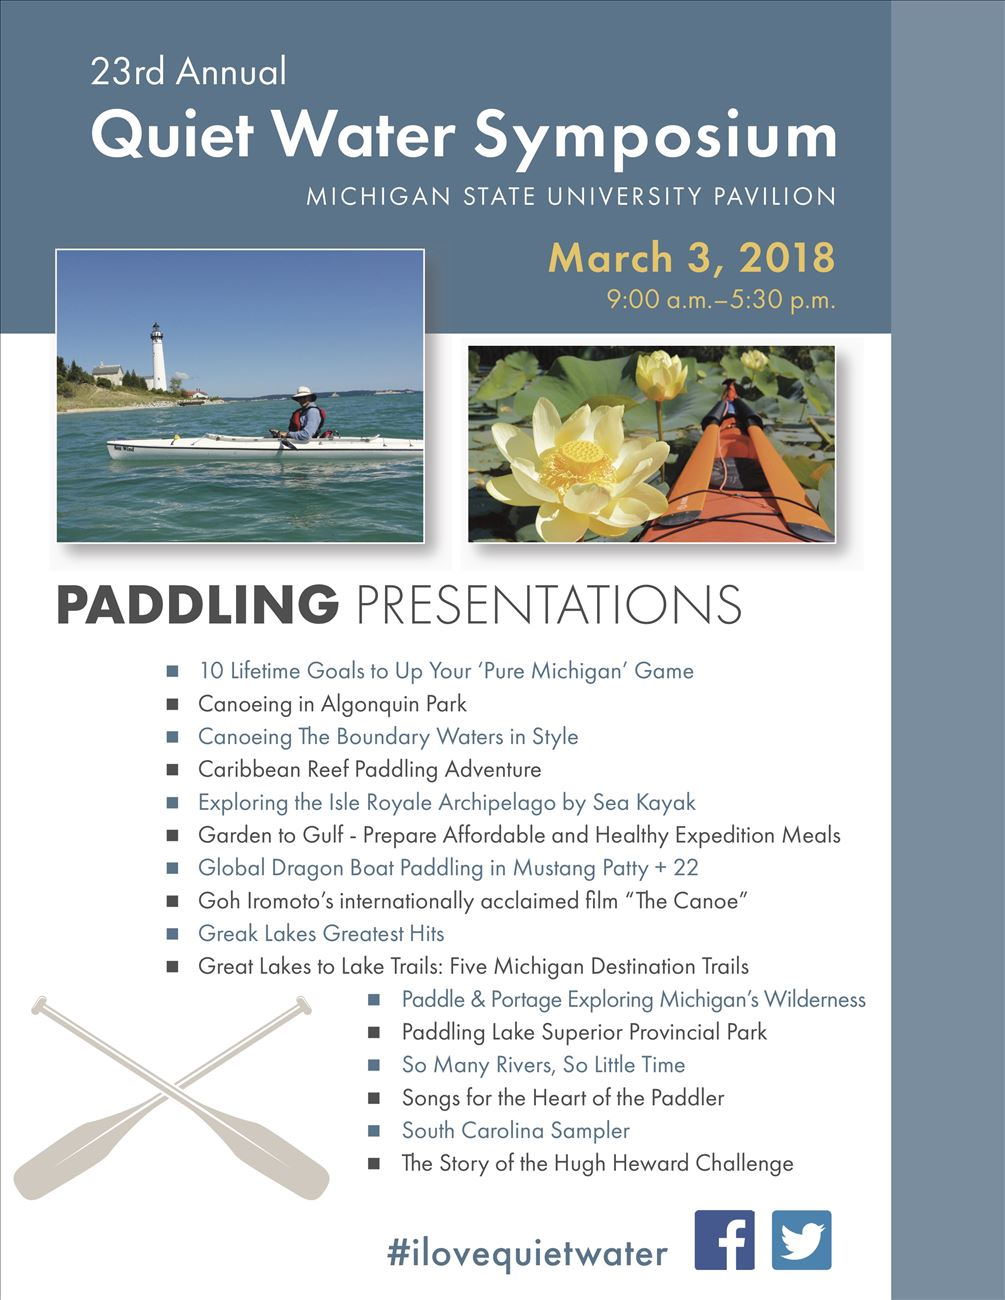 List of Paddling Presentations for the 2018 Quiet Water Symposium